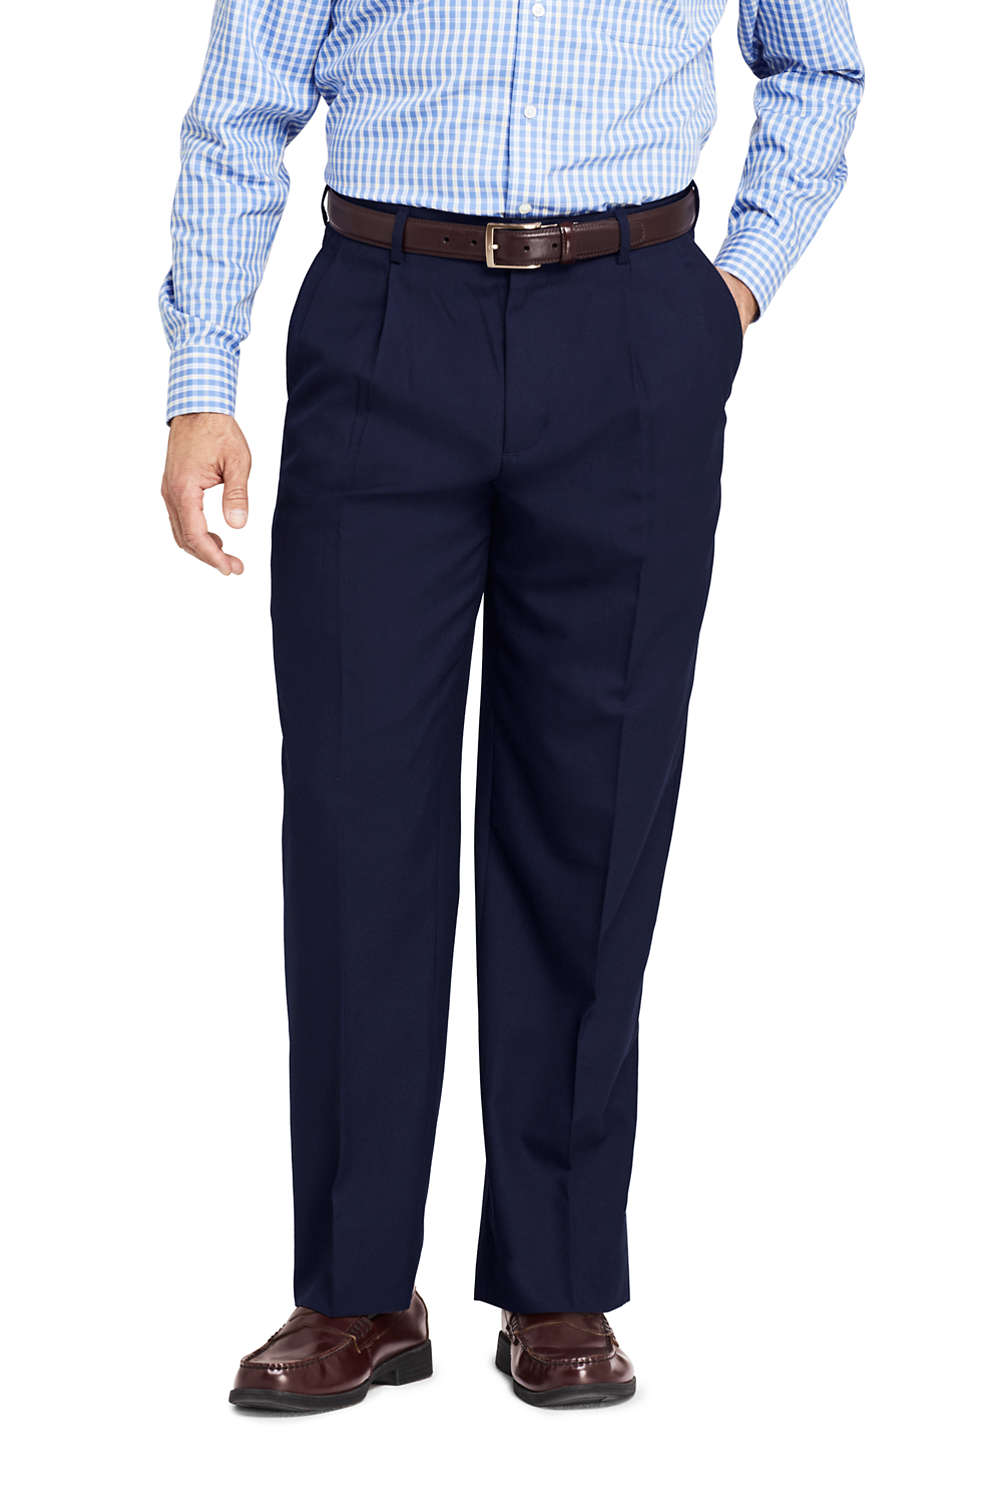 433bba57 Men's Comfort Waist Pleated Year'rounder Wool Dress Pants from Lands ...